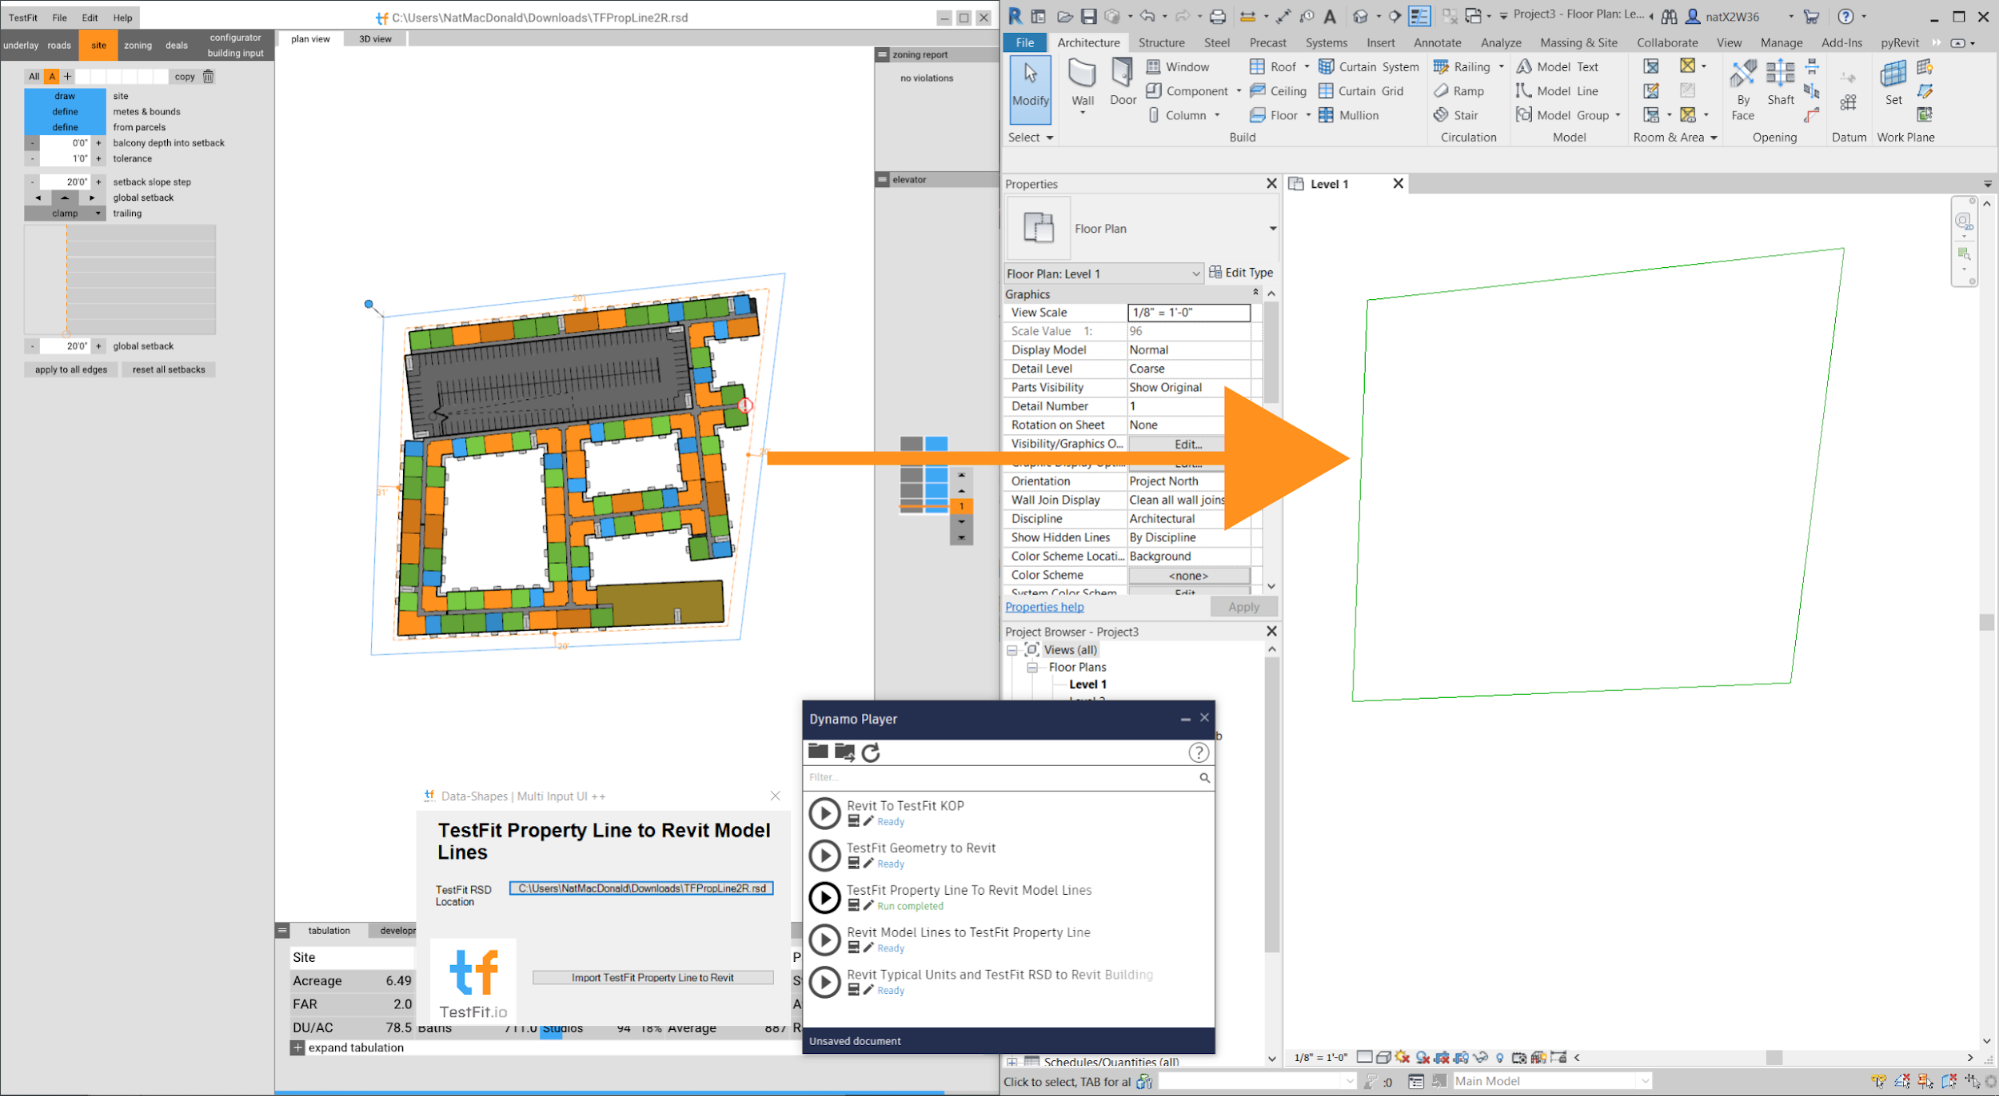 Property lines from TestFit to Revit